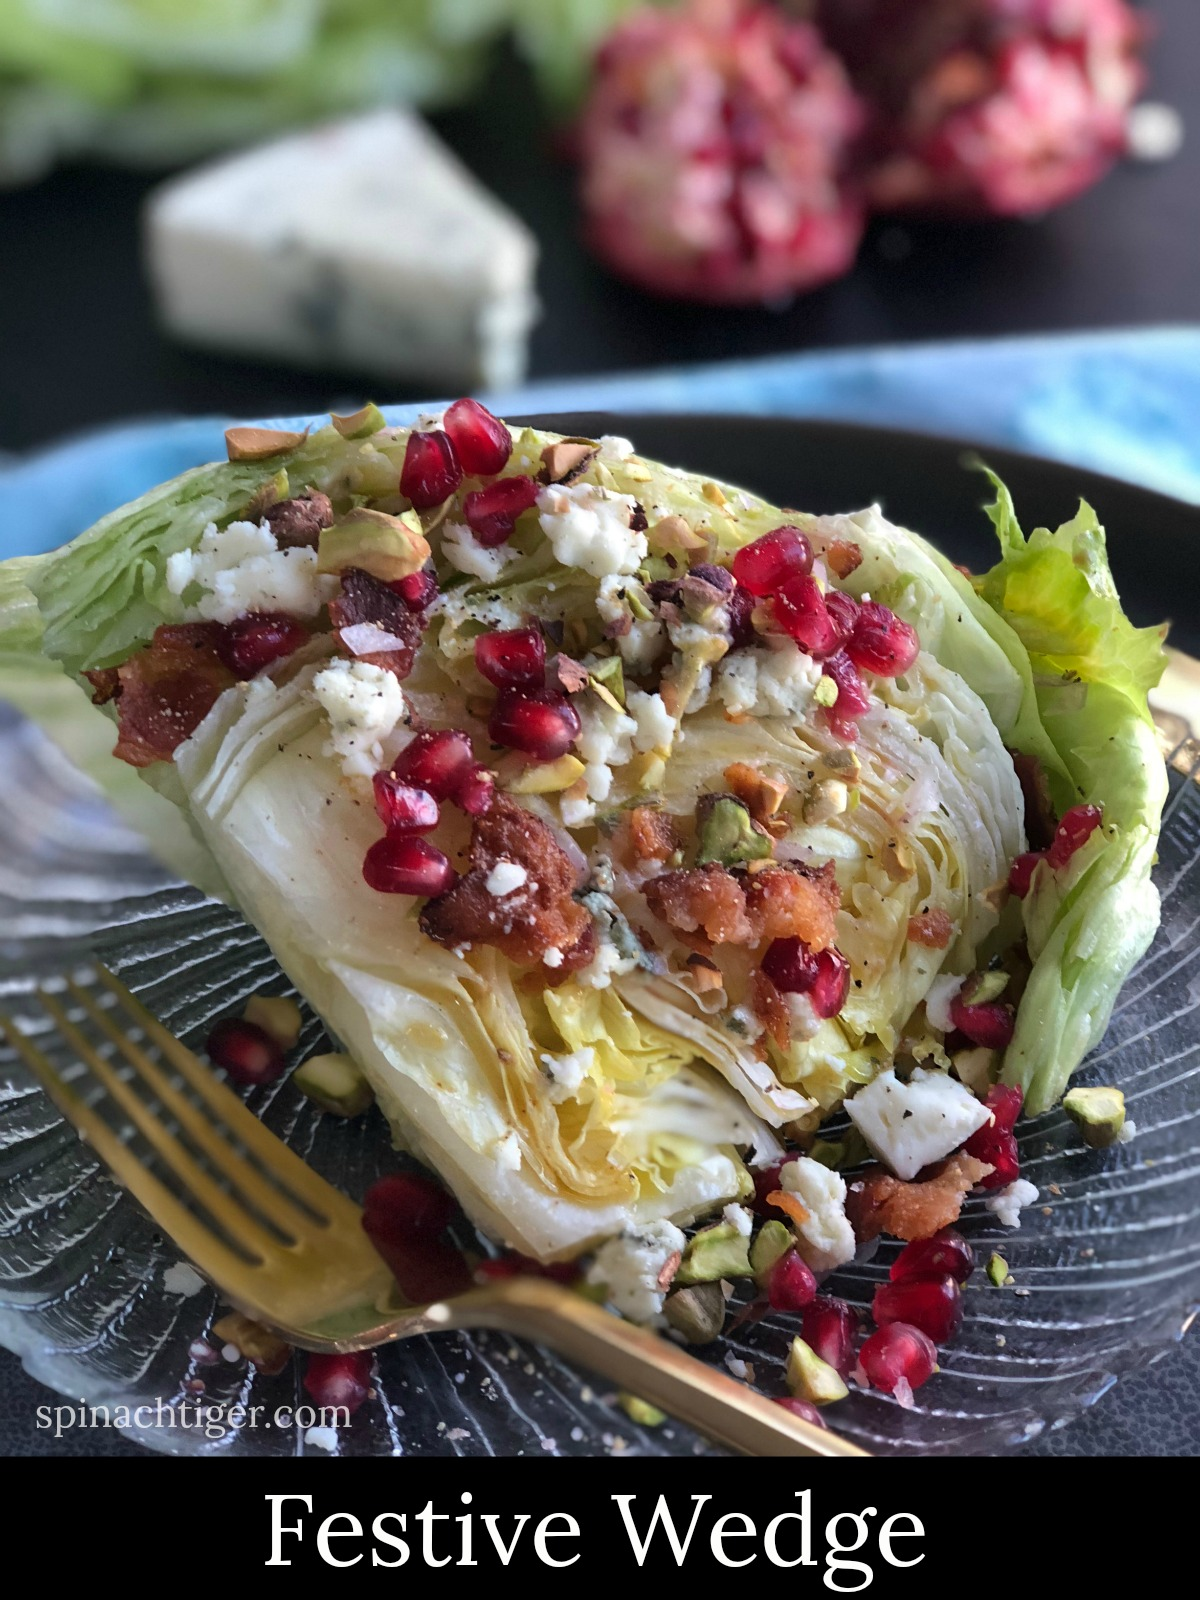 Festive Party Wedge Salad from Spinach Tiger